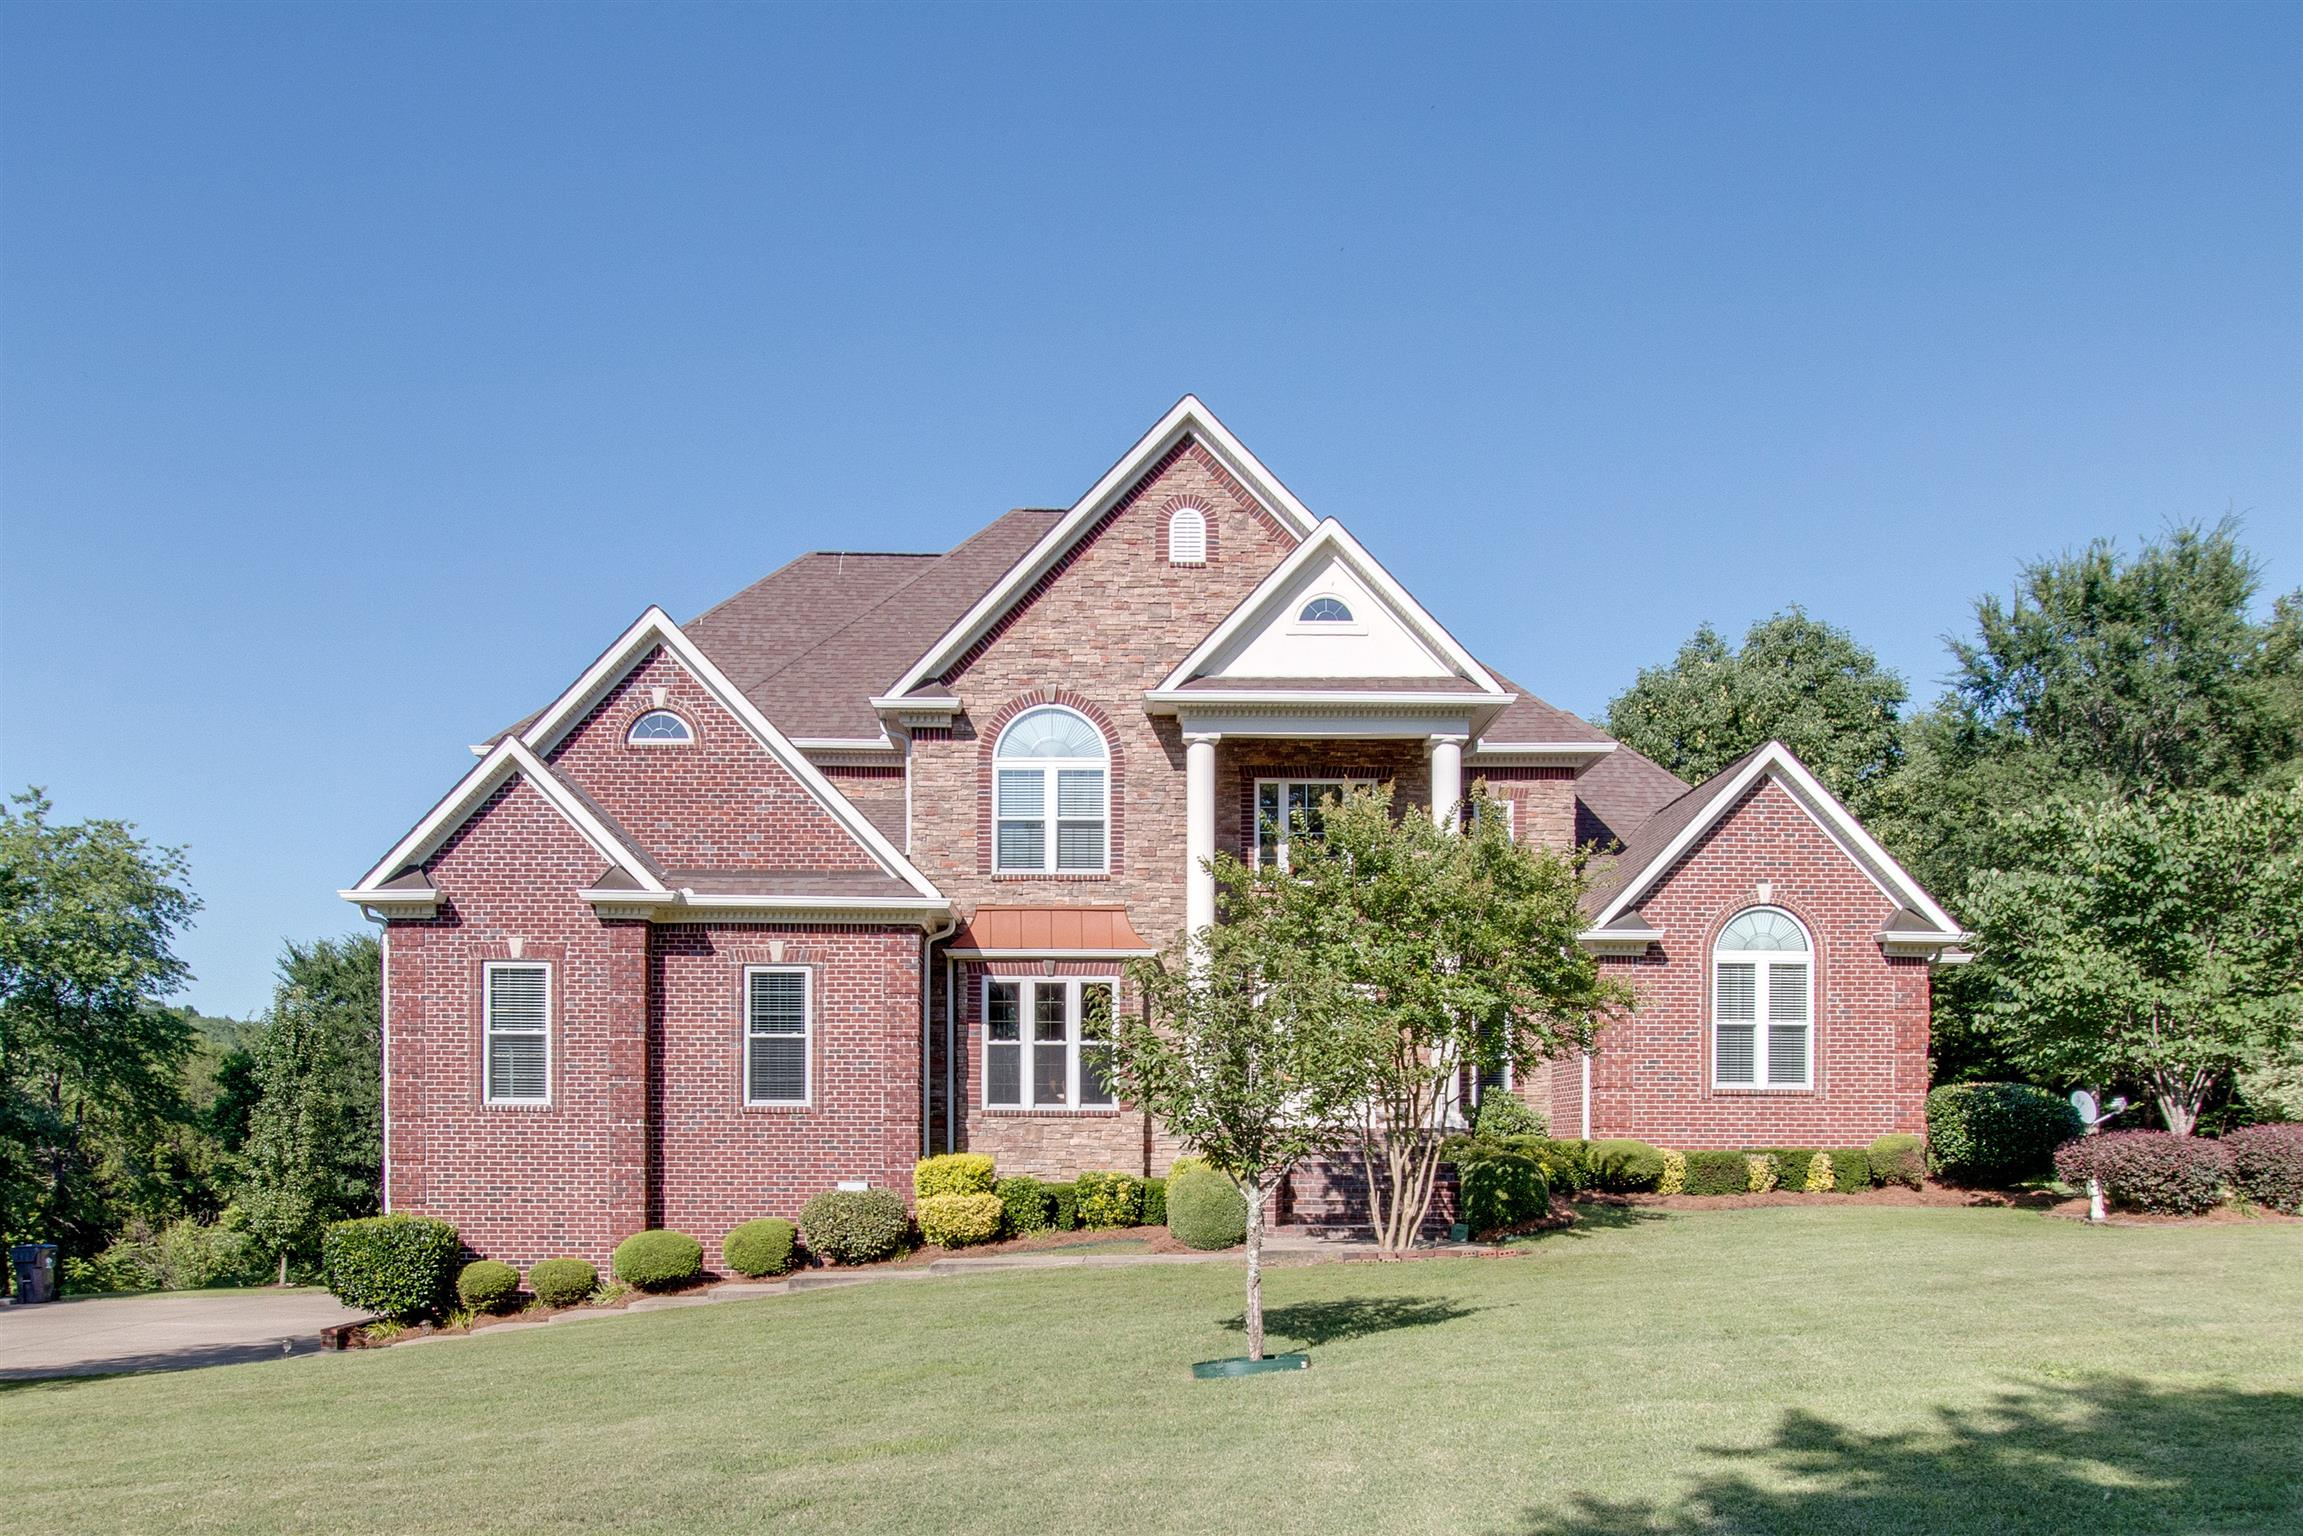 2394 Benders Ferry Rd, Mount Juliet, Tennessee